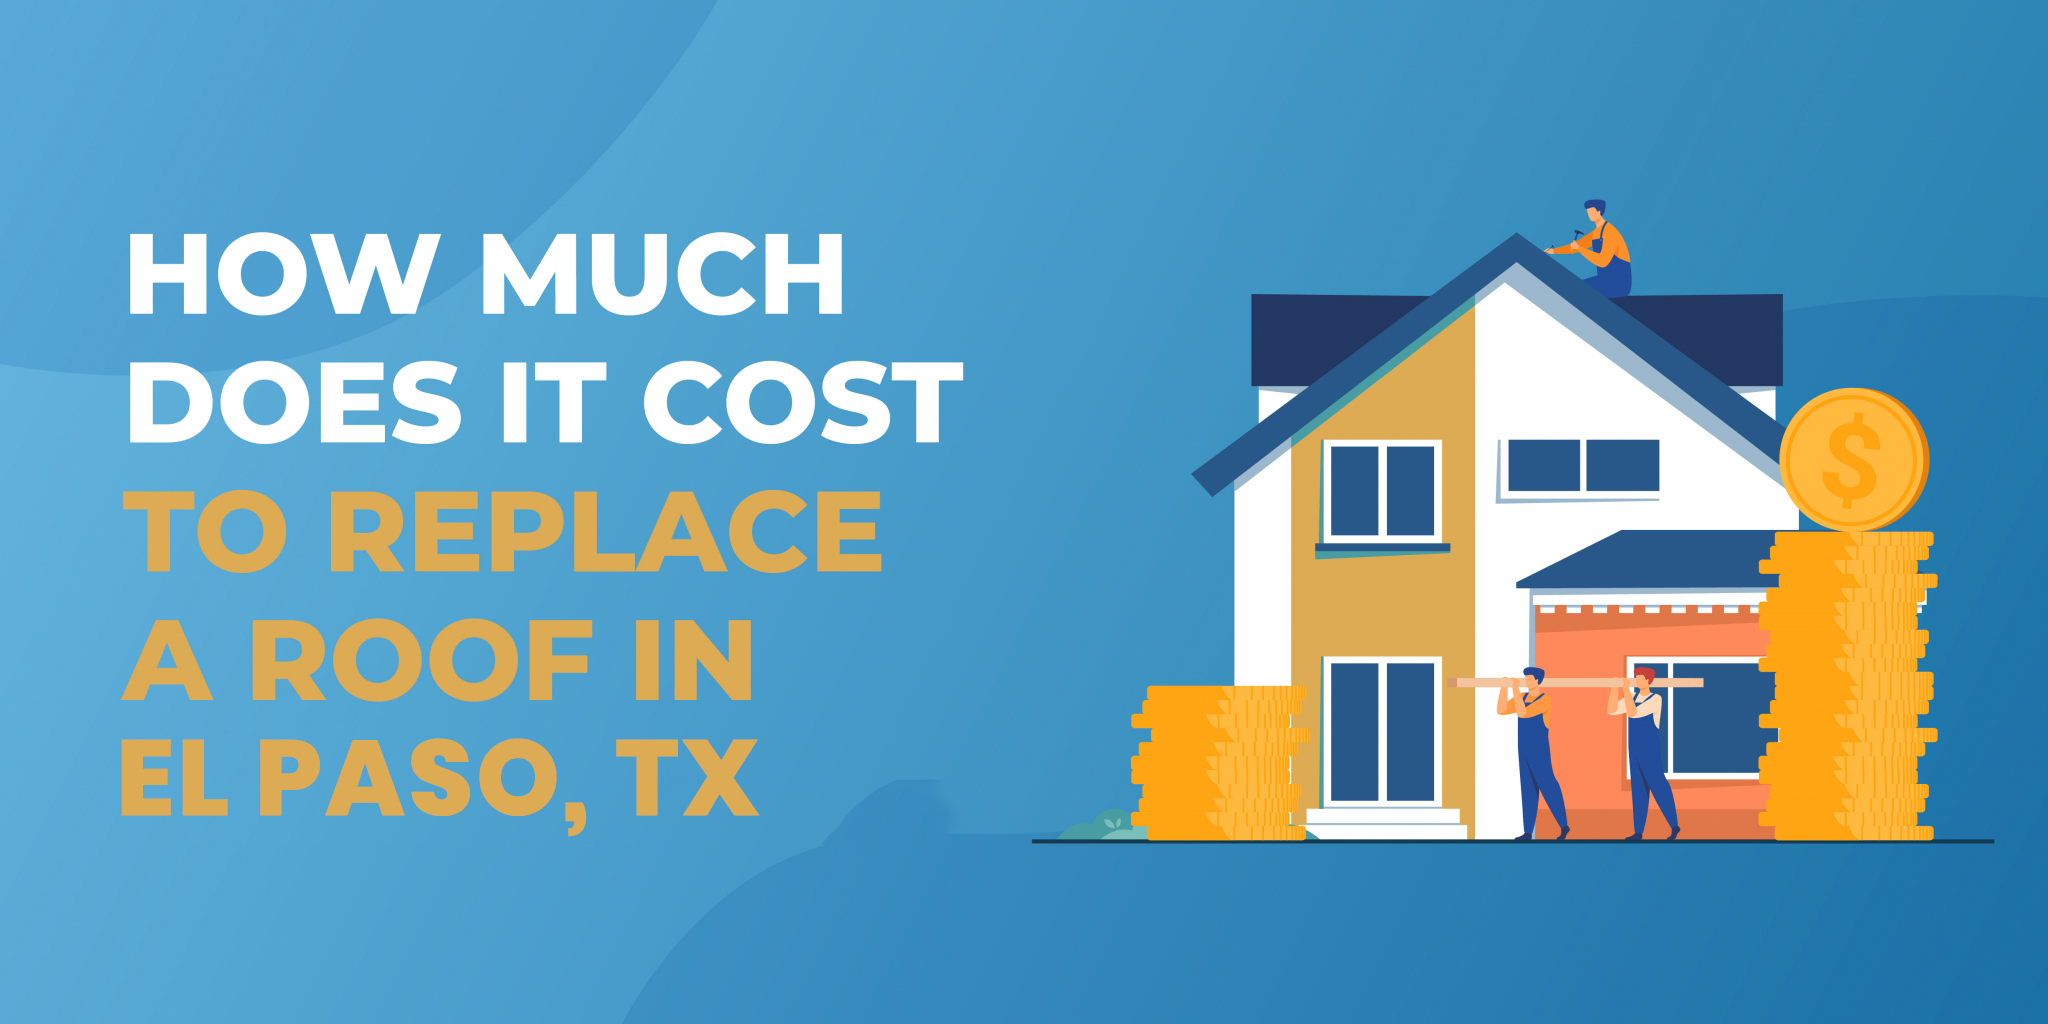 How Much Does It Cost to Replace a Roof in El Paso?